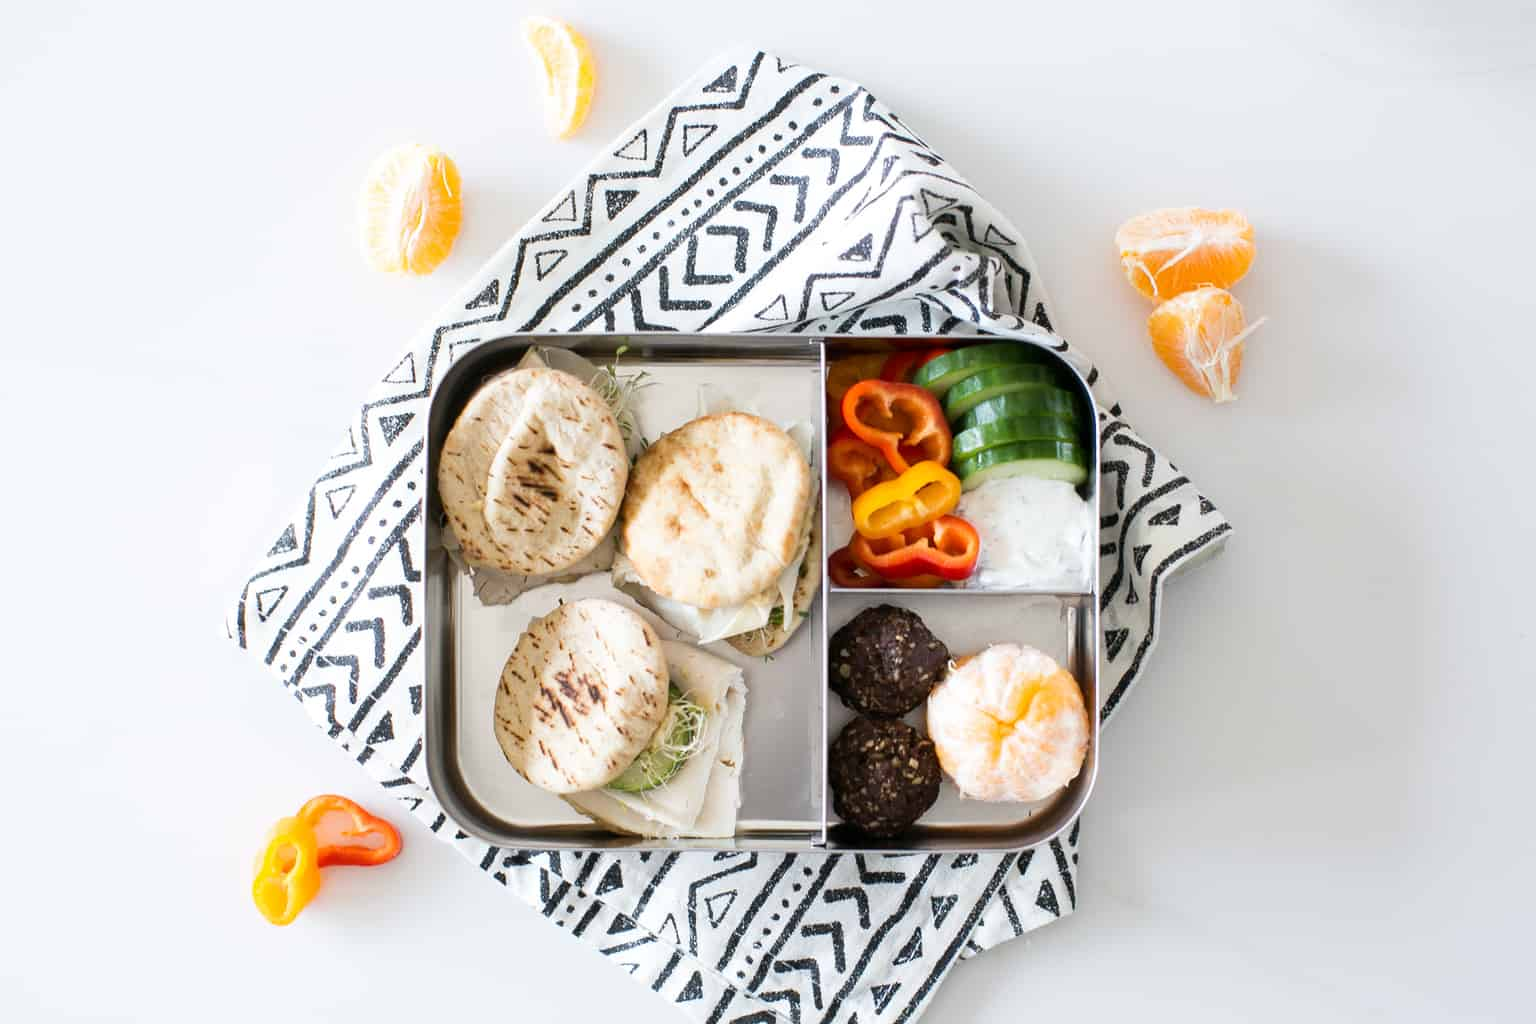 4 Tasty Bento Box Lunch Recipes with Deli Turkey and Cheese